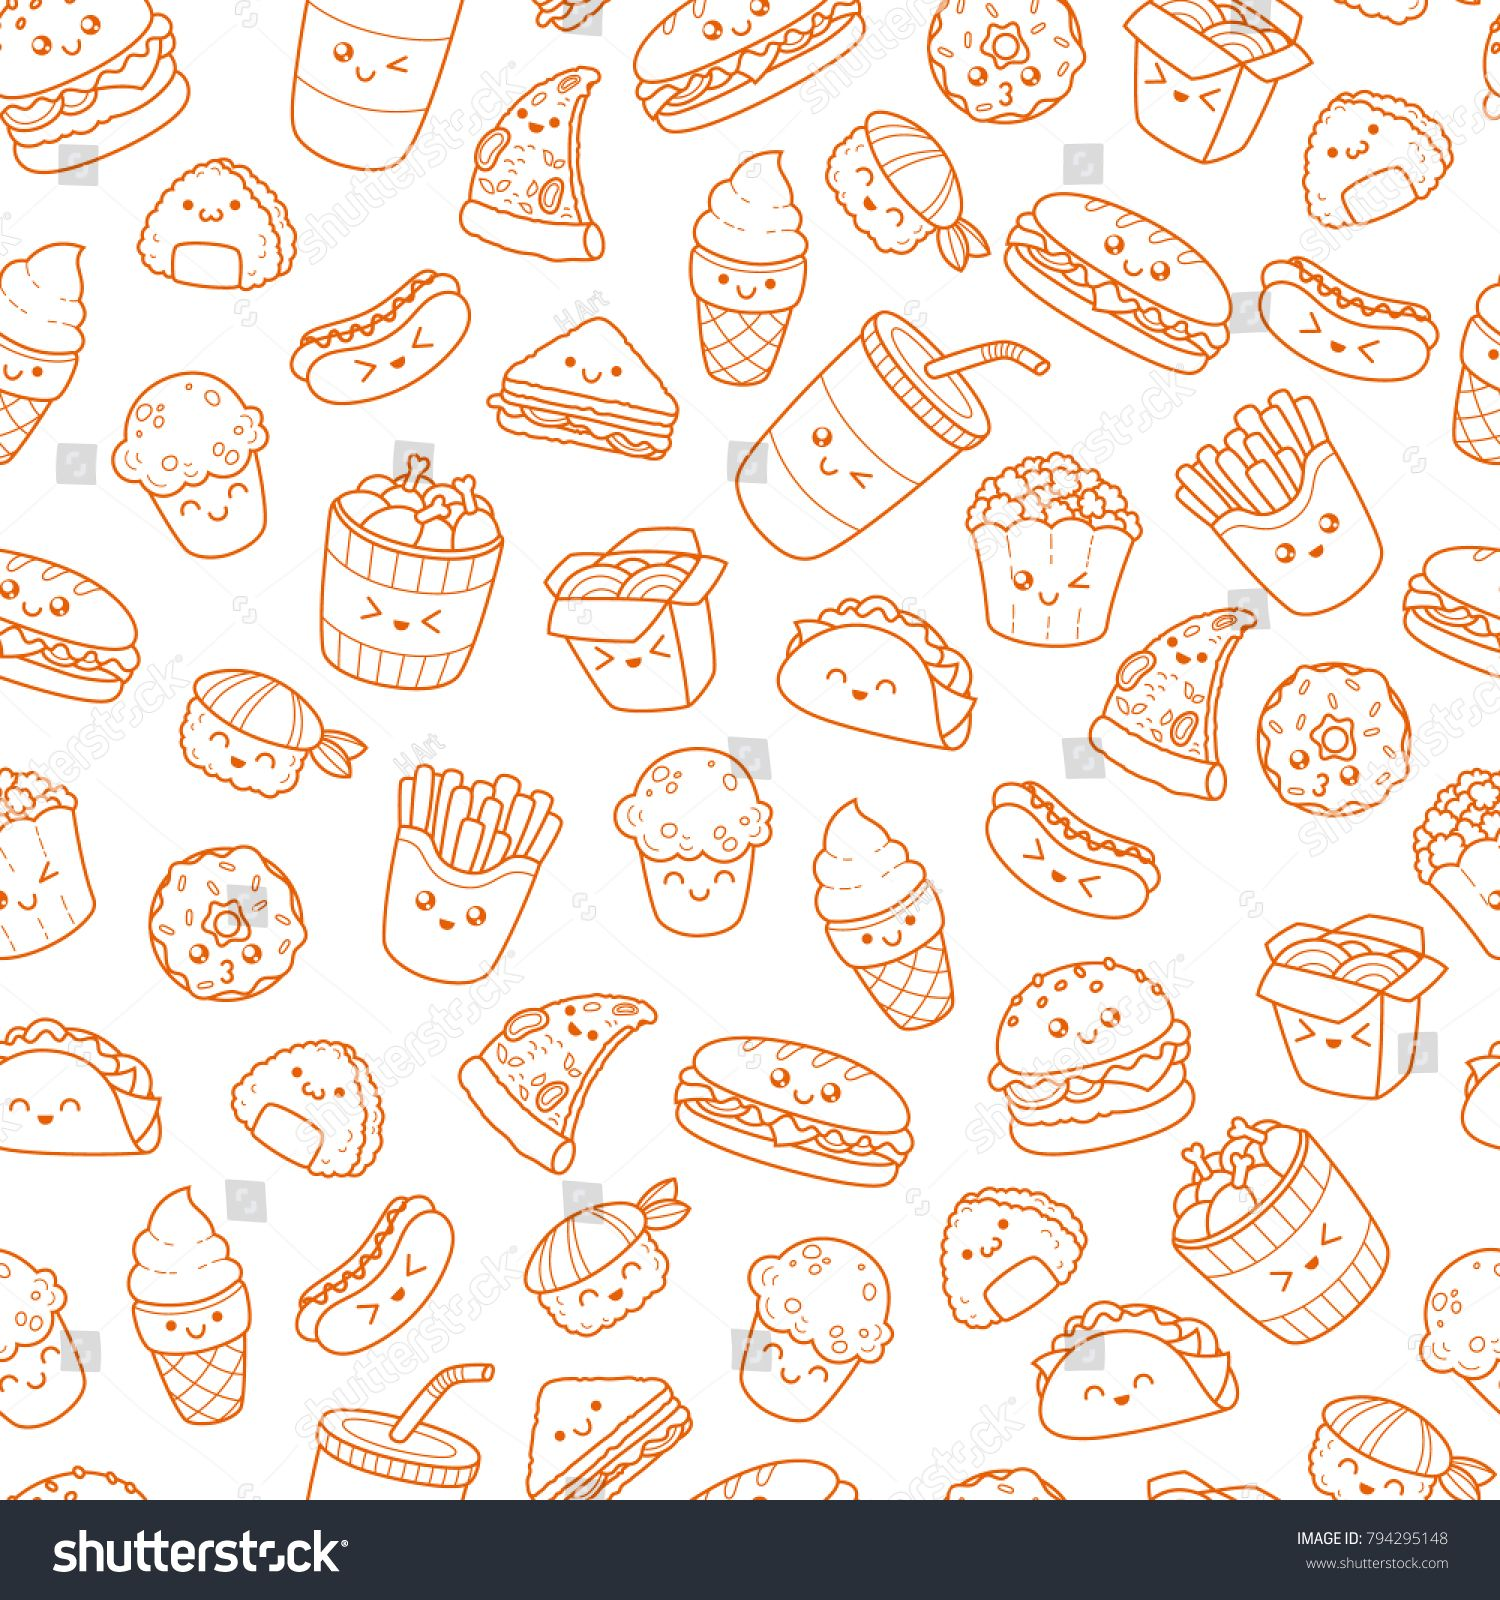 Set Of Vector Cartoon Doodle Icons Junk Food Illustration Of